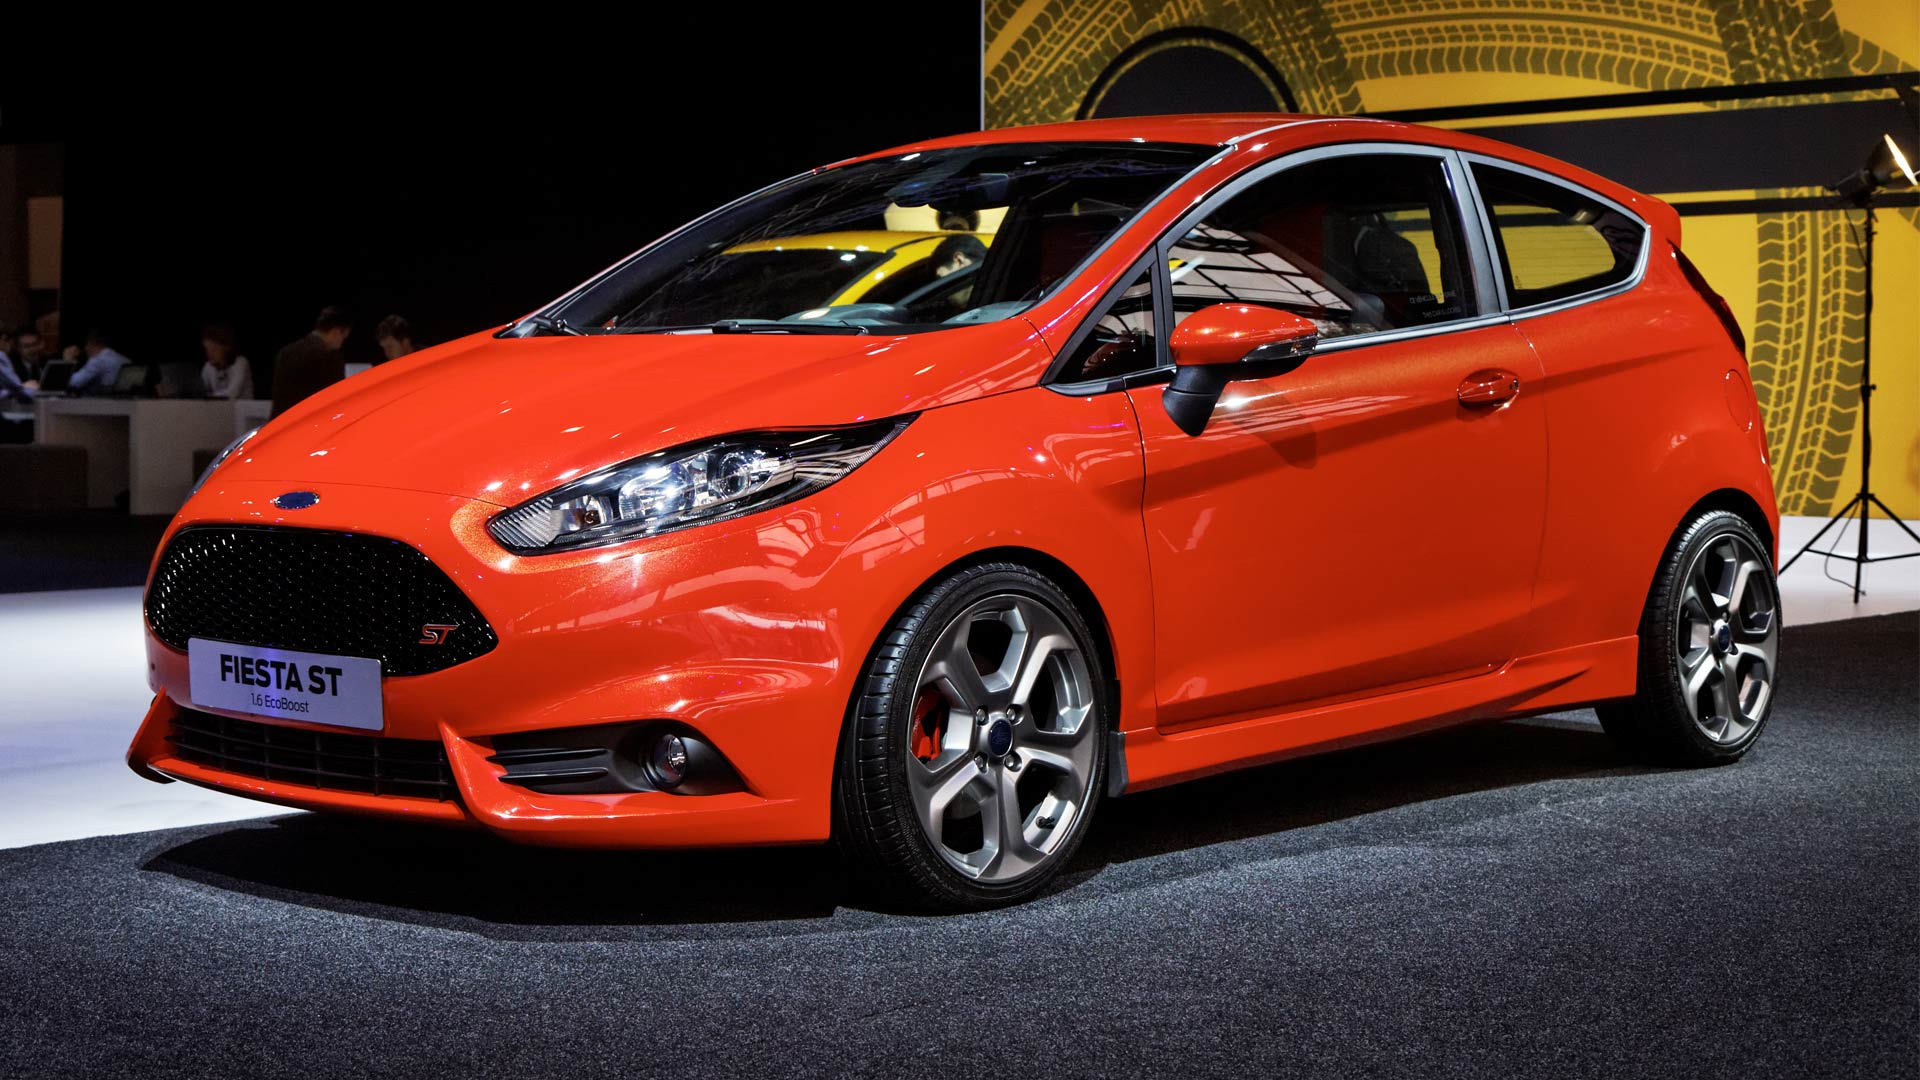 Ford Fiesta - MAT Foundry